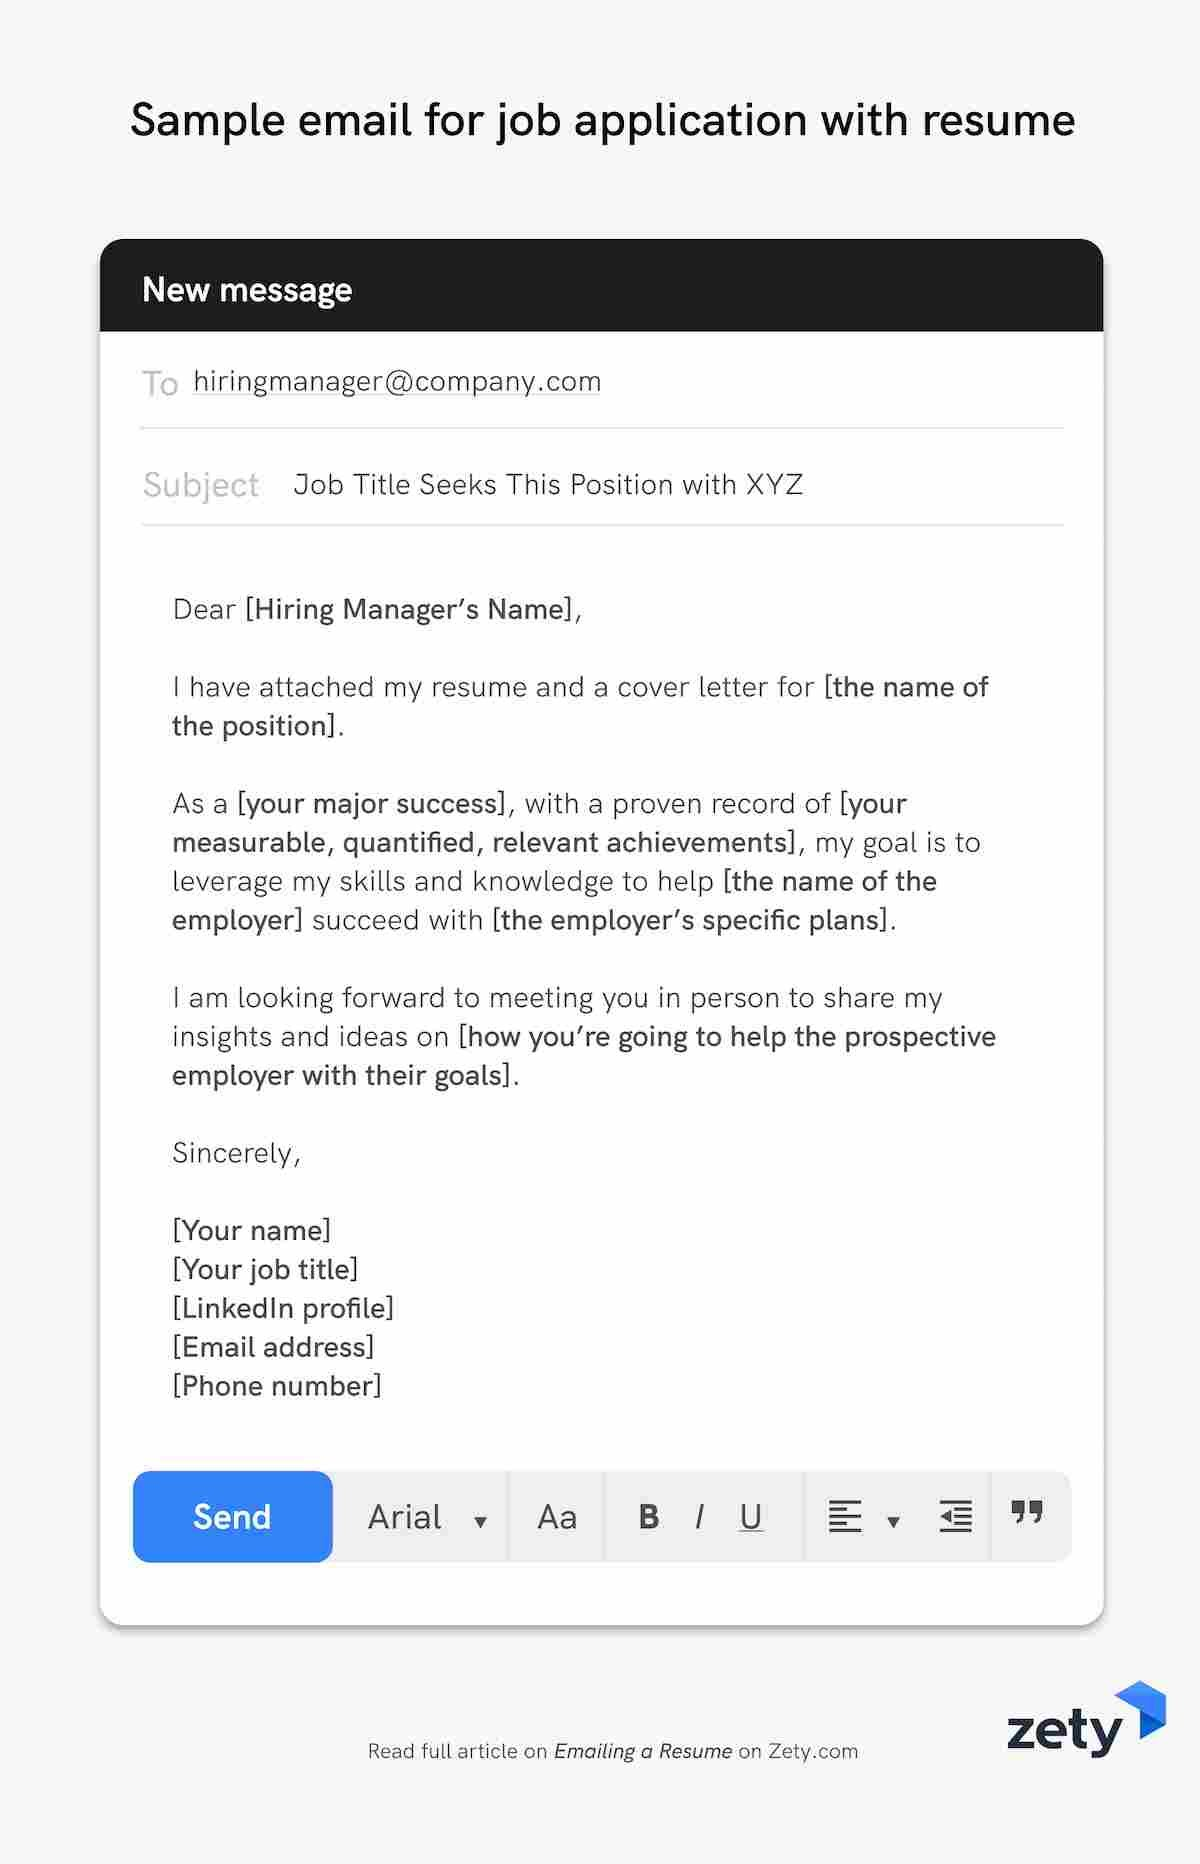 emailing resume job application email samples request from candidate sample for with Resume Request Resume From Candidate